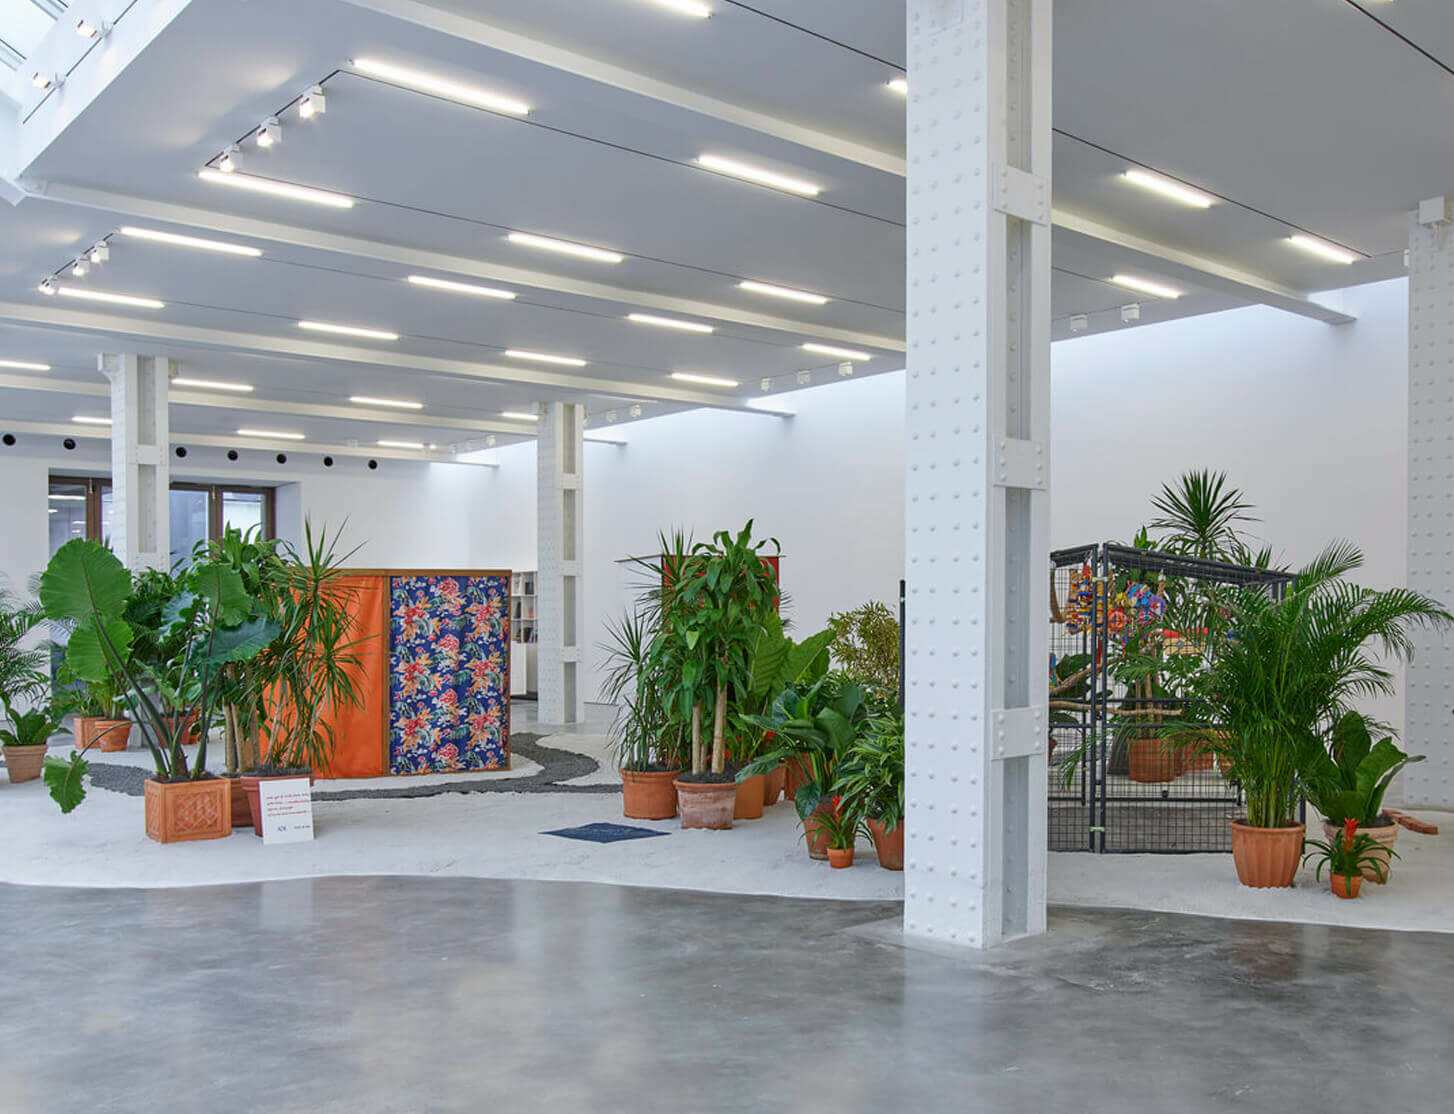 Hélio Oiticica's first show at Lisson Gallery reviewed in Artforum